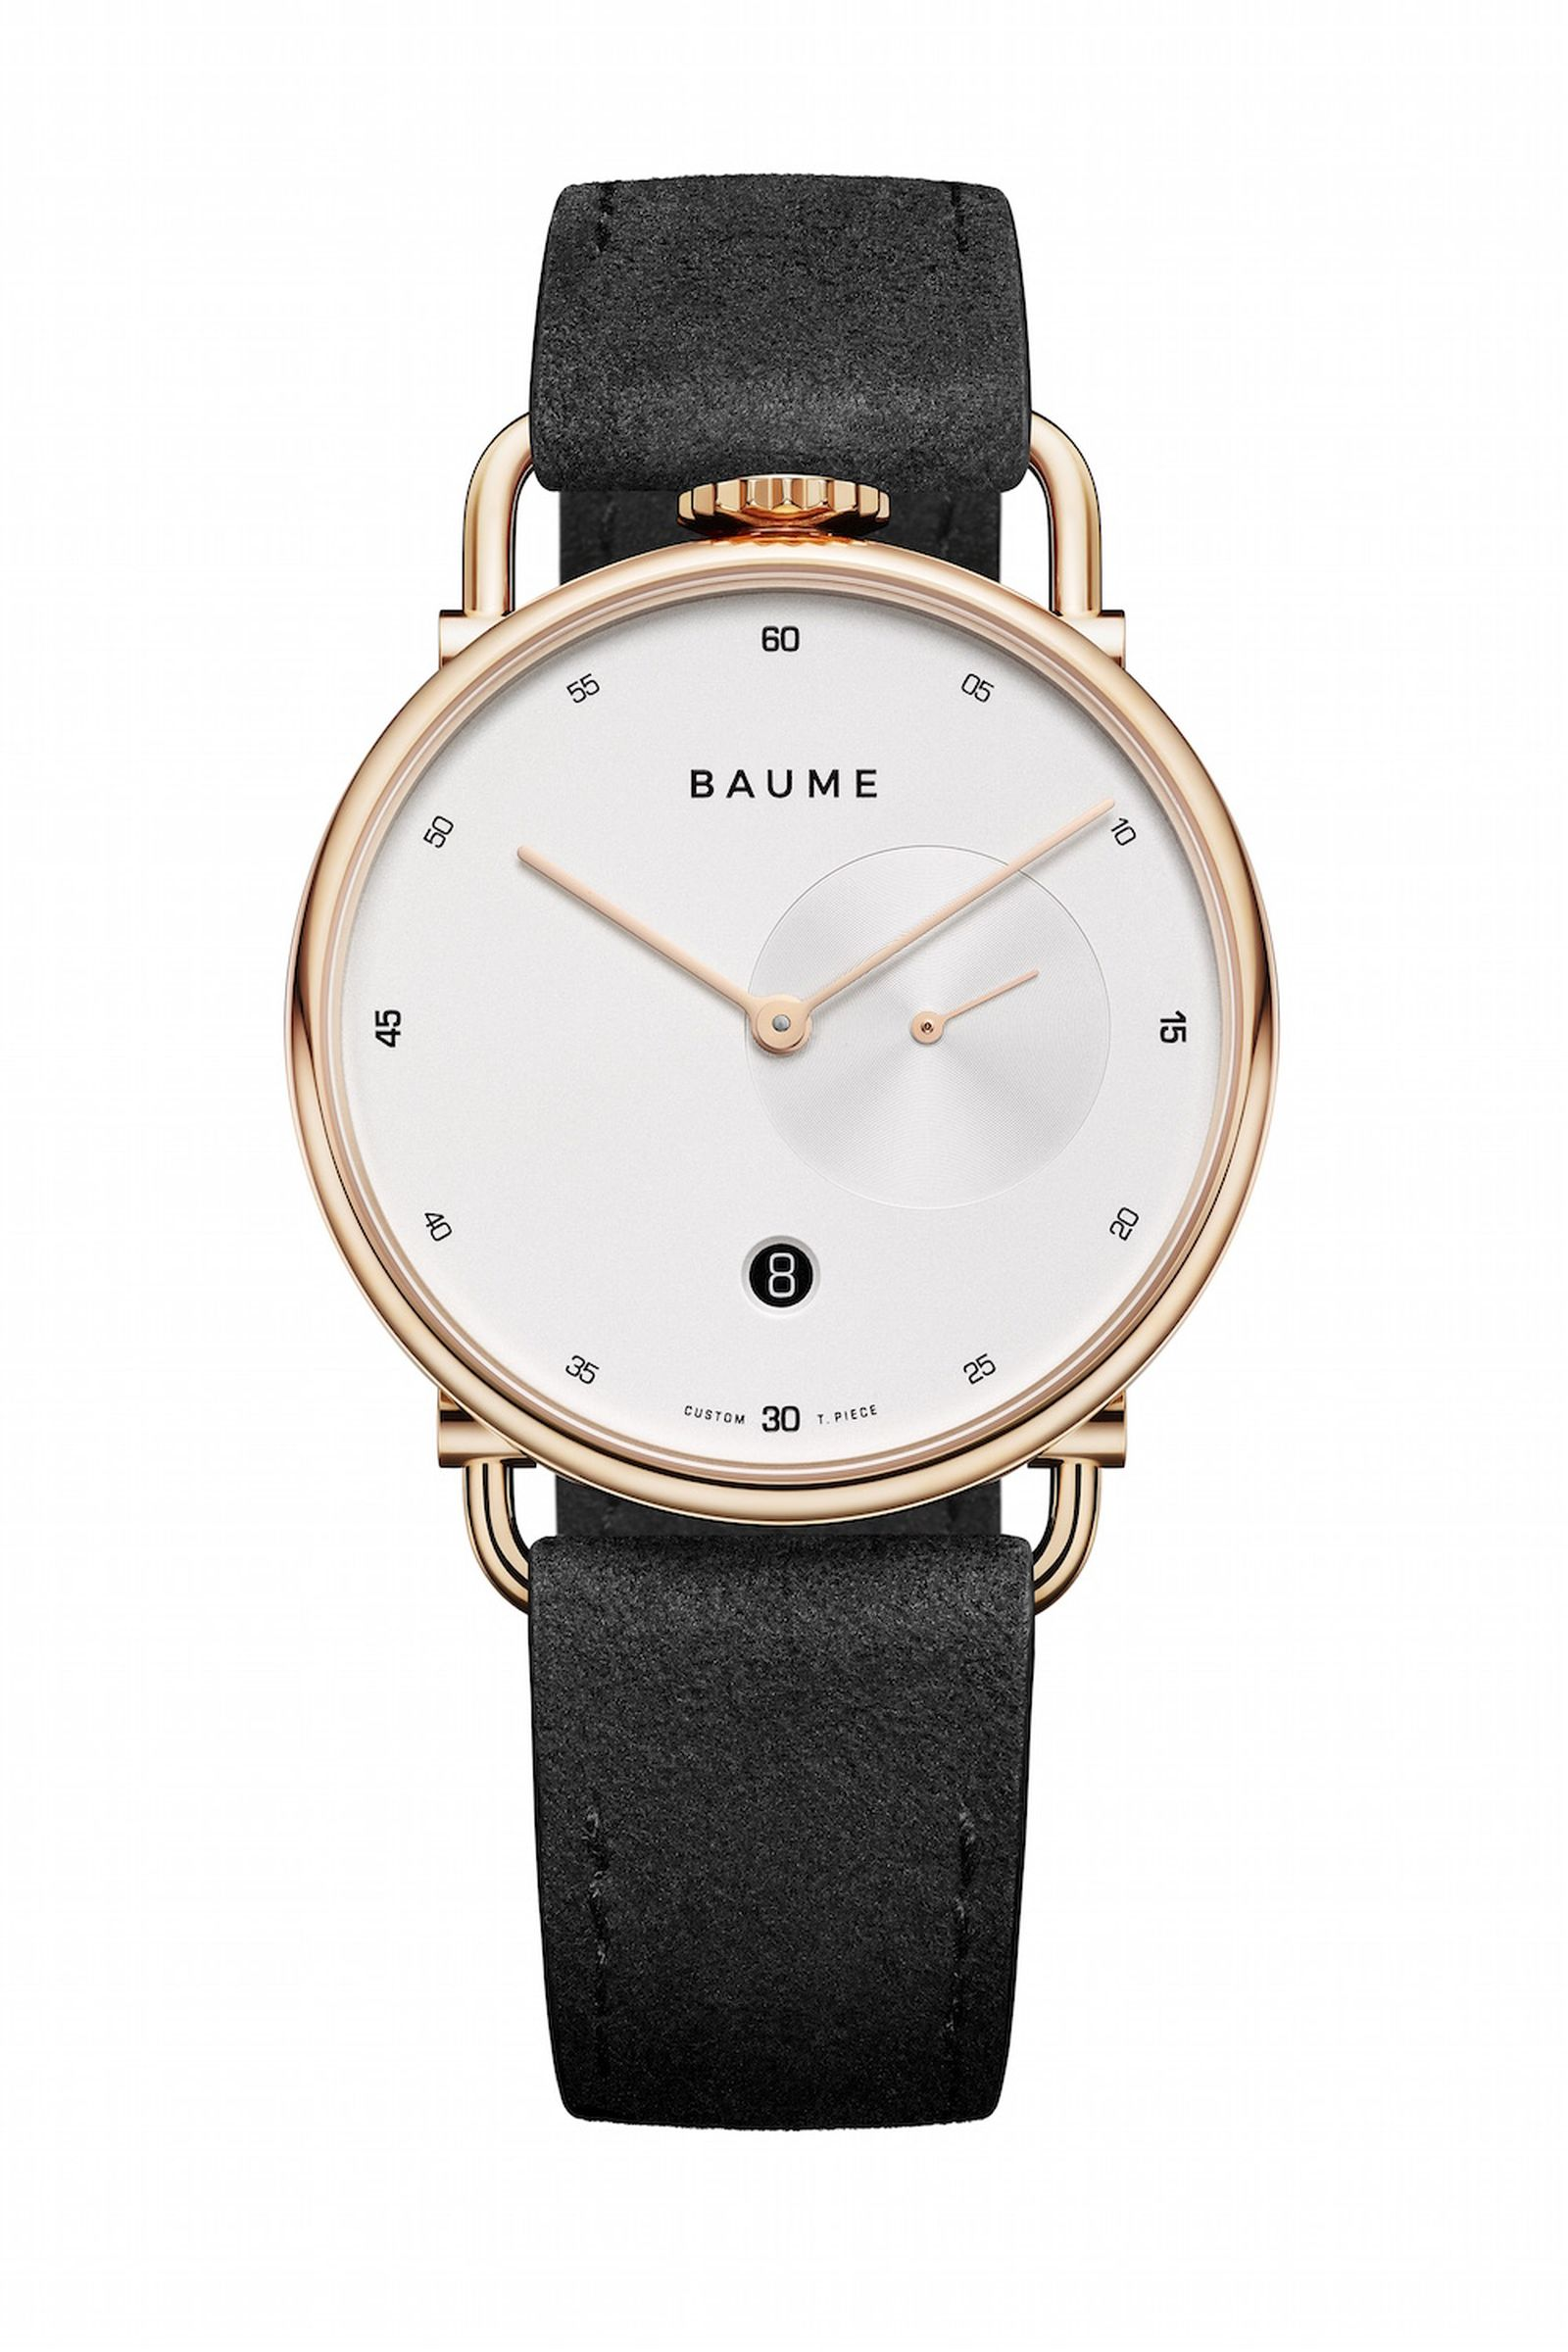 baume-sustainable-watch-collection-08